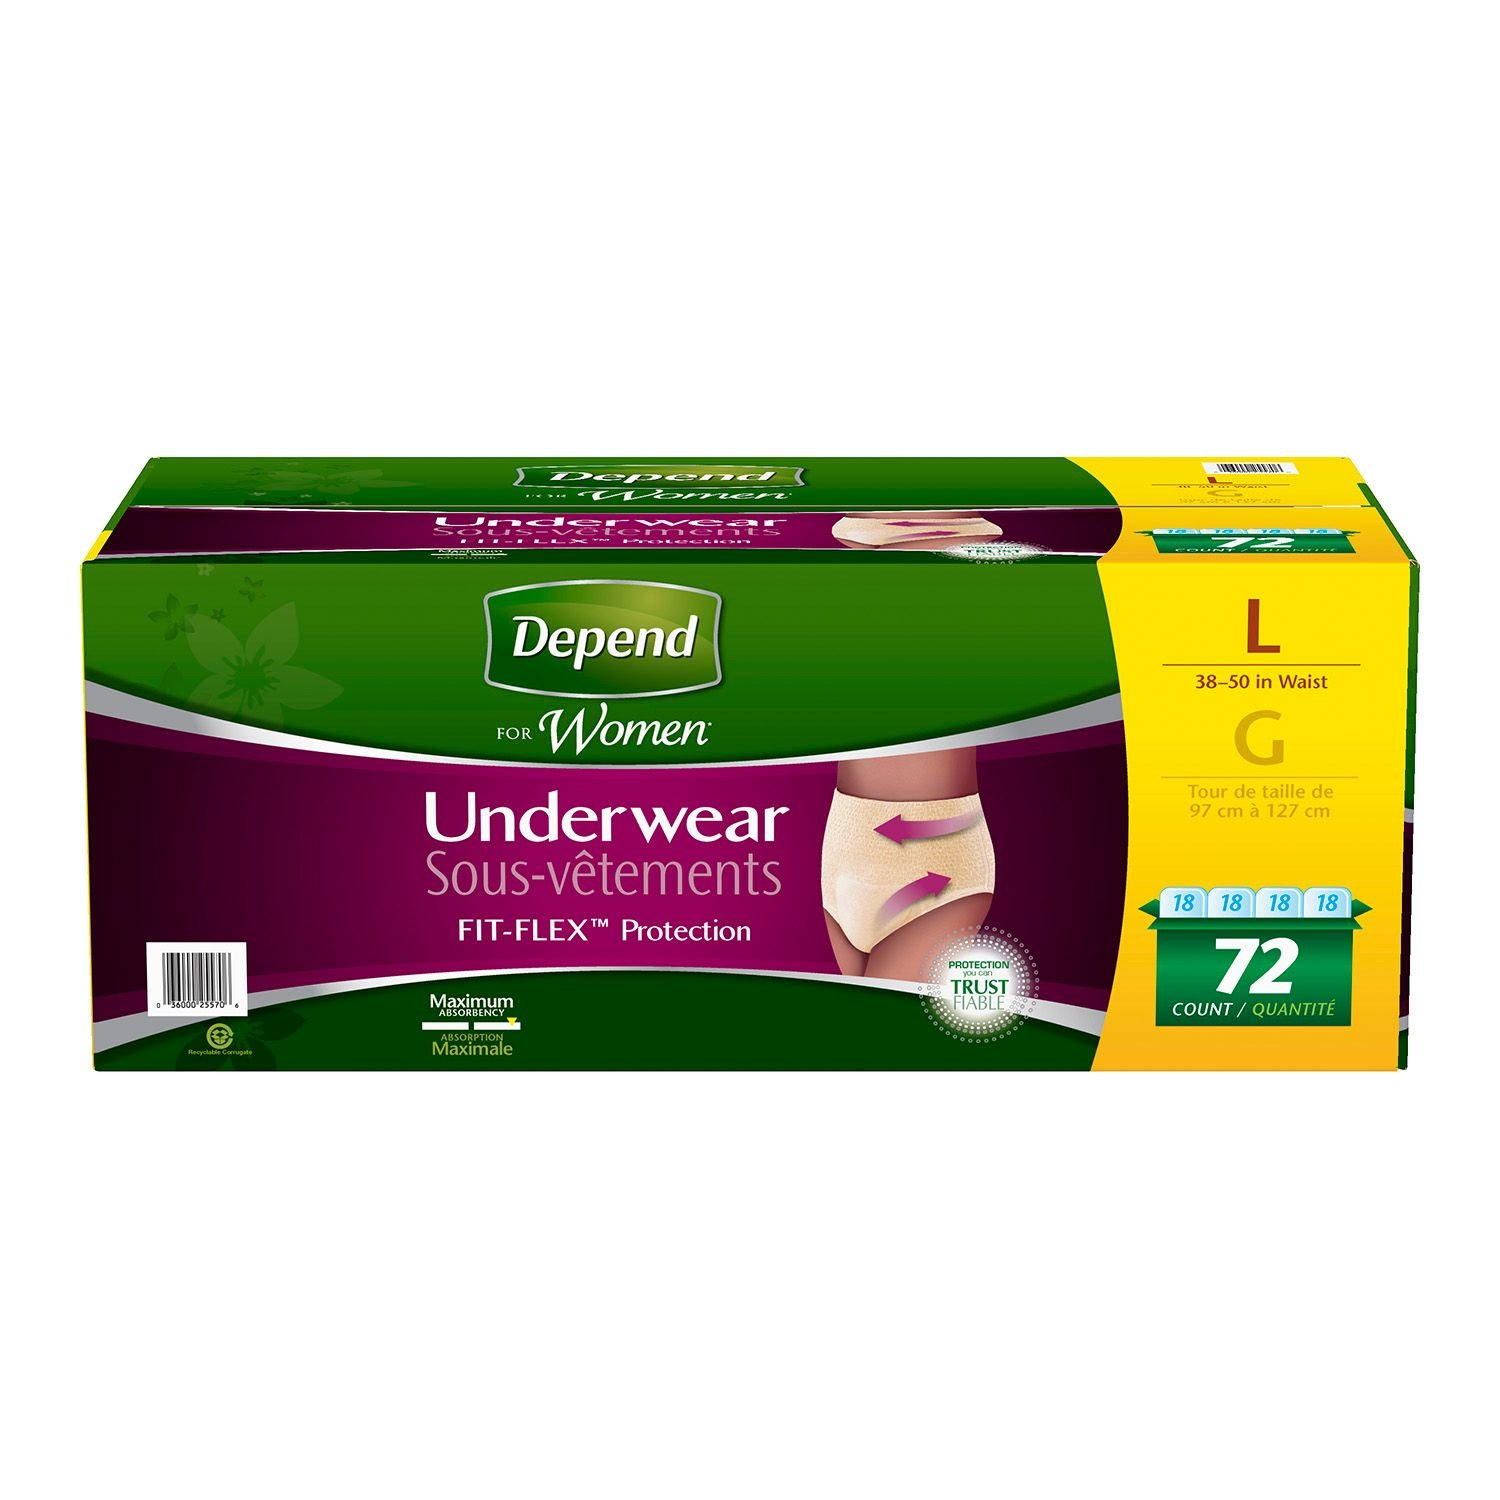 Depend for Women Underwear, Maximum Absorbency, Large (72 ct.) (pack of 2)